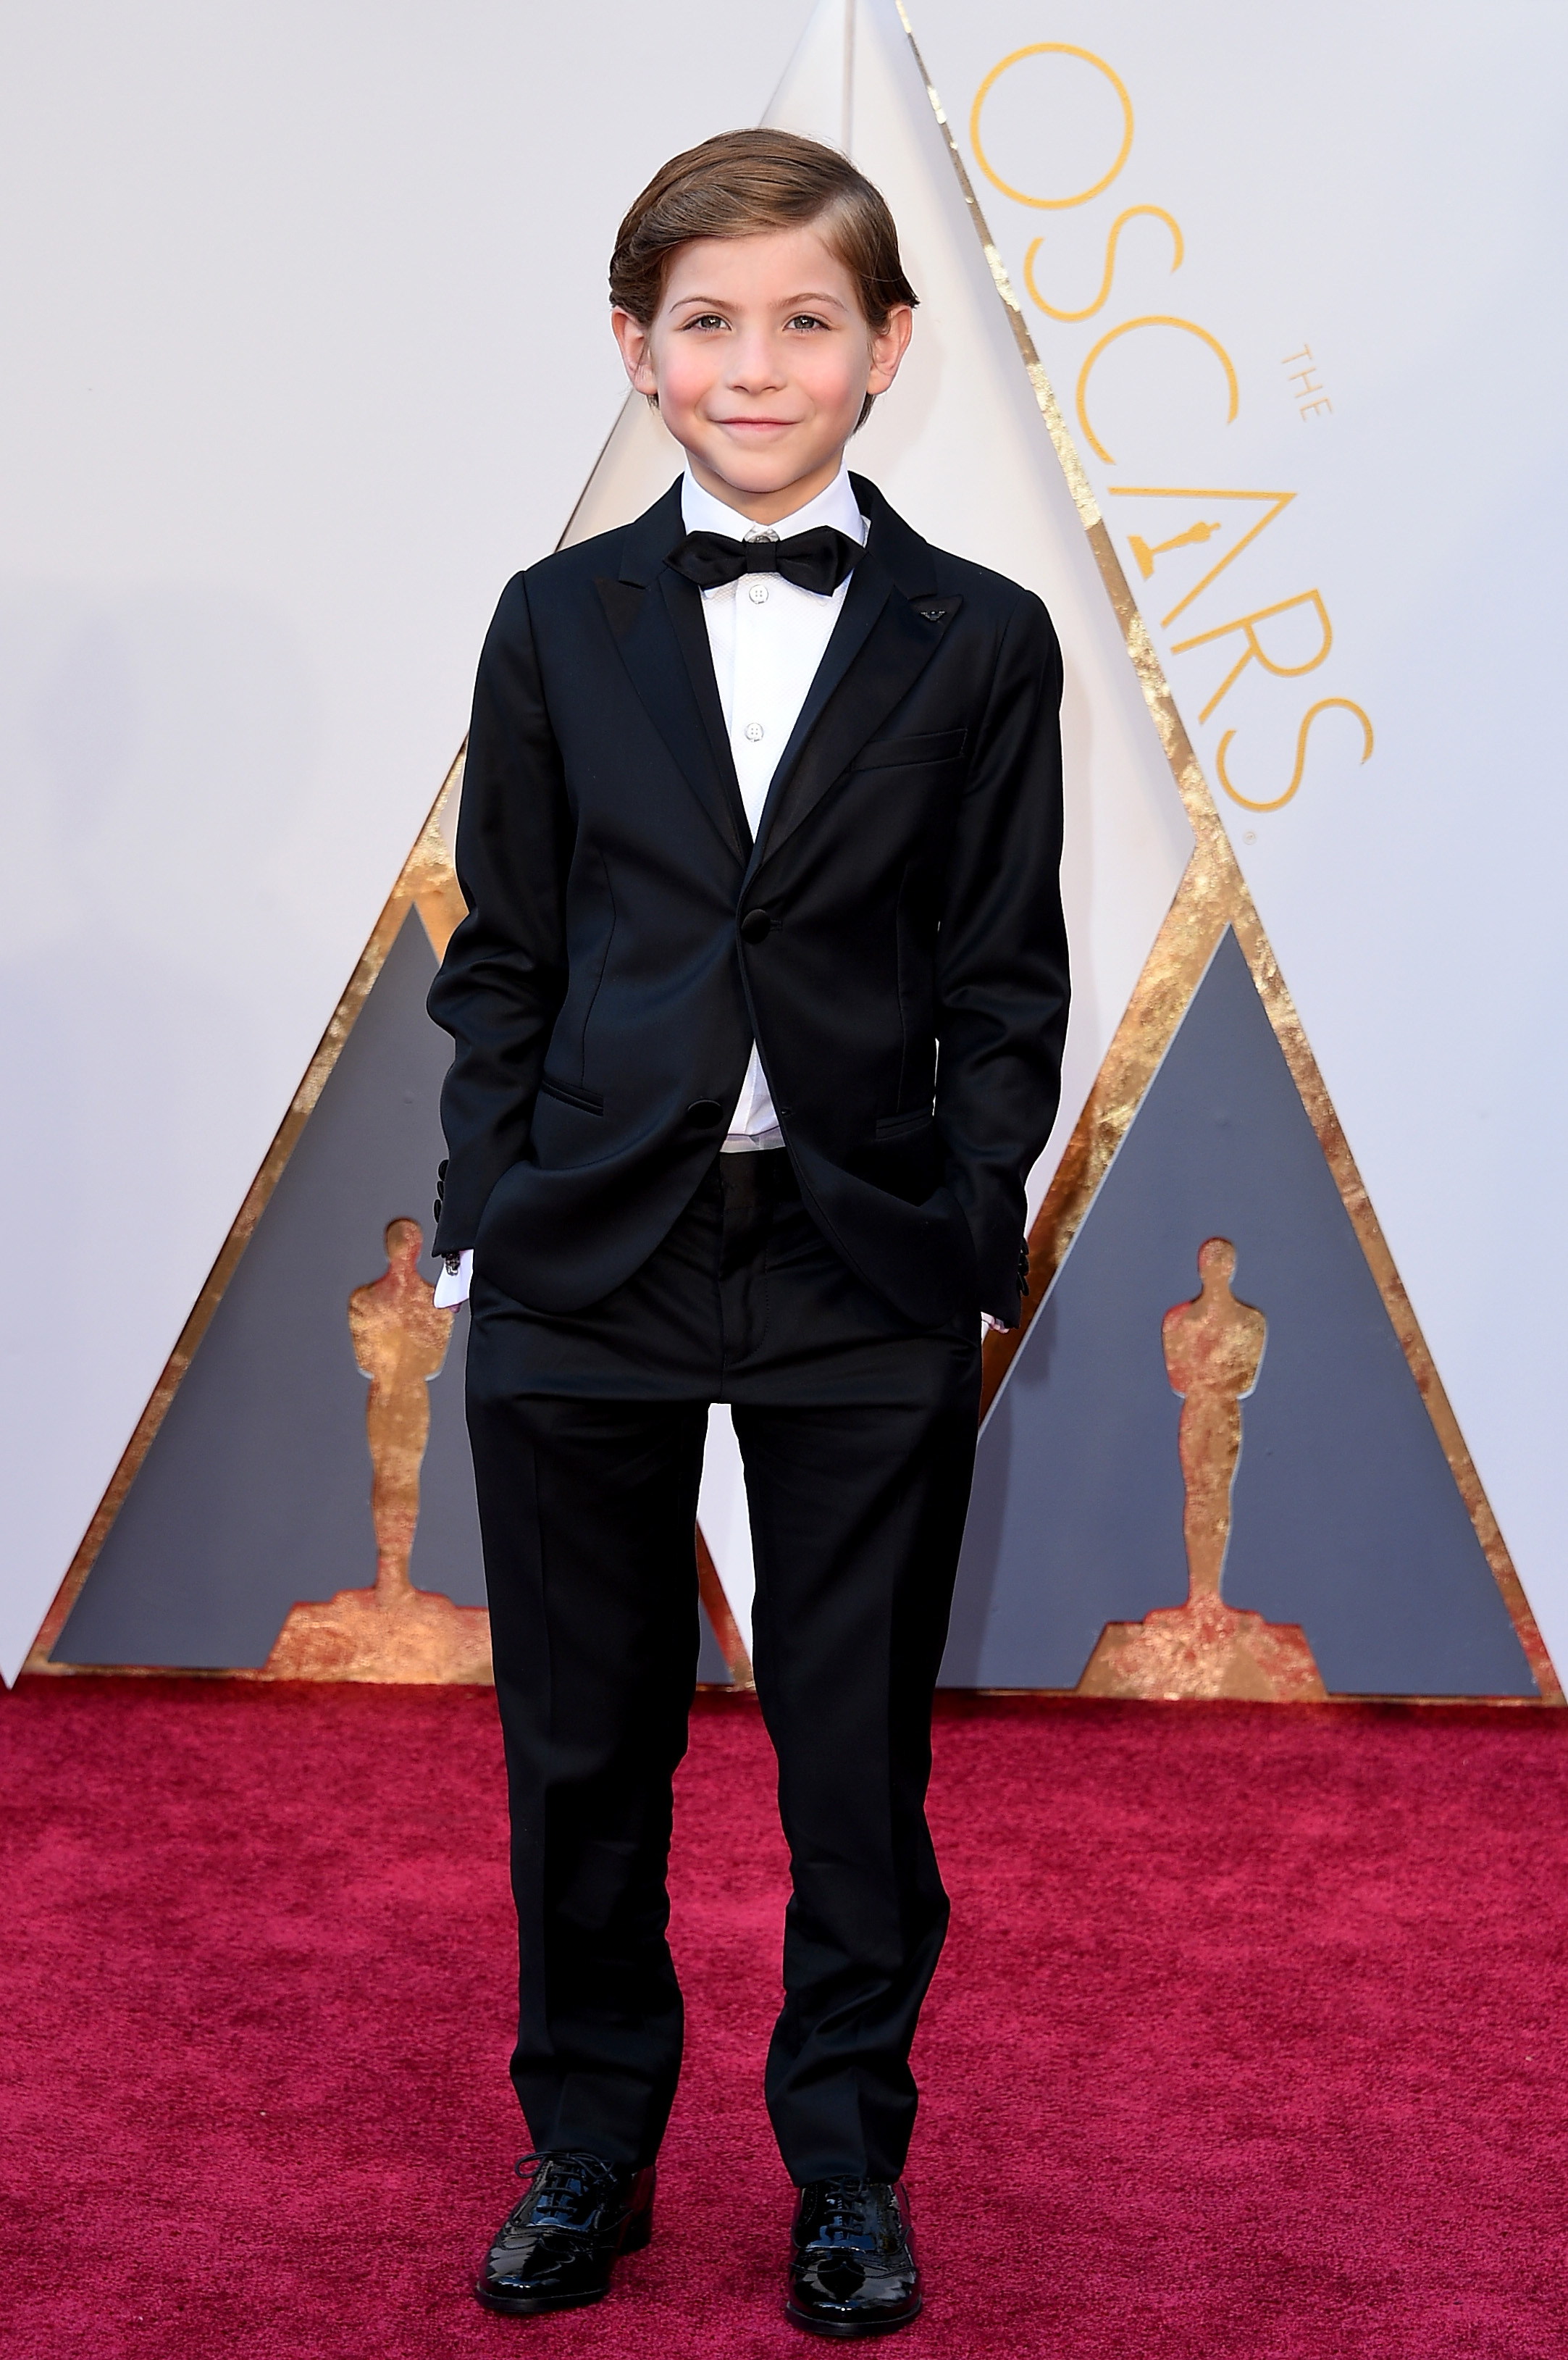 Jacob Tremblay attends the 88th Annual Academy Awards on Feb. 28, 2016 in Hollywood, Calif.